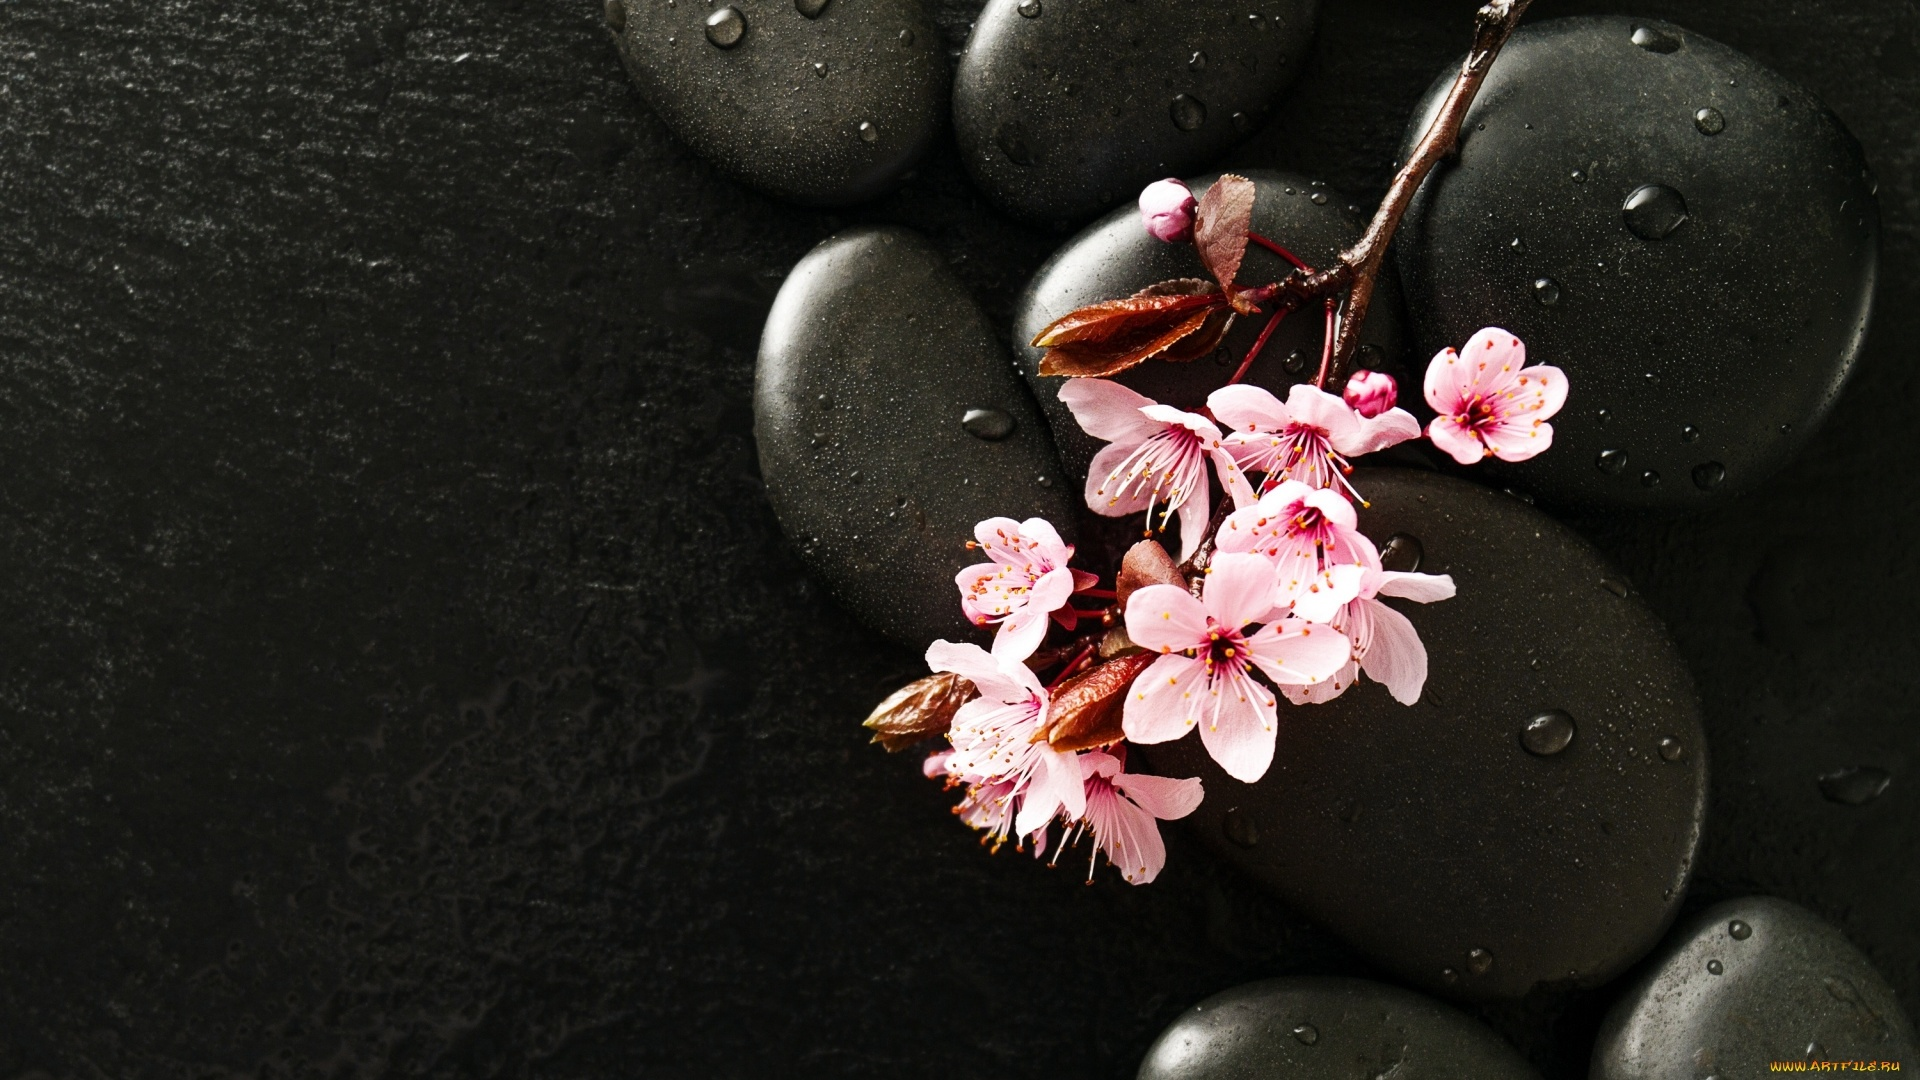 Flower And Stones wallpaper for pc